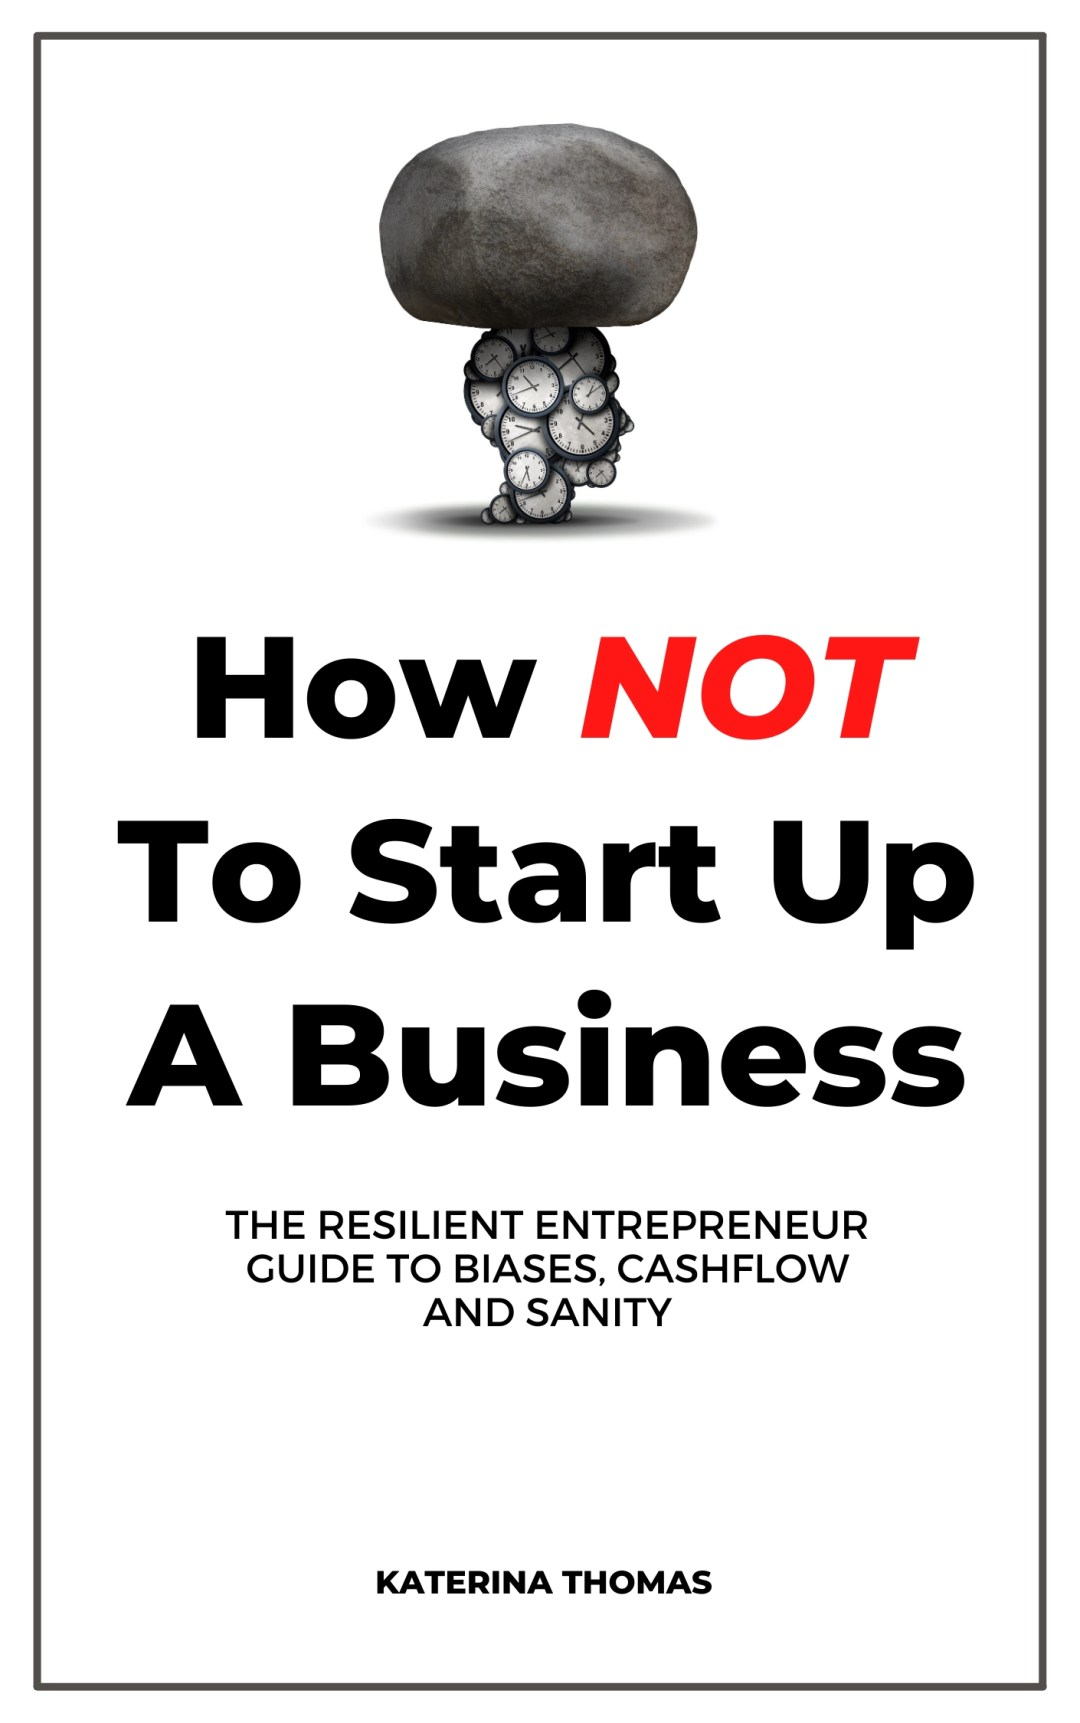 How NOT tO Start up a Business Boo